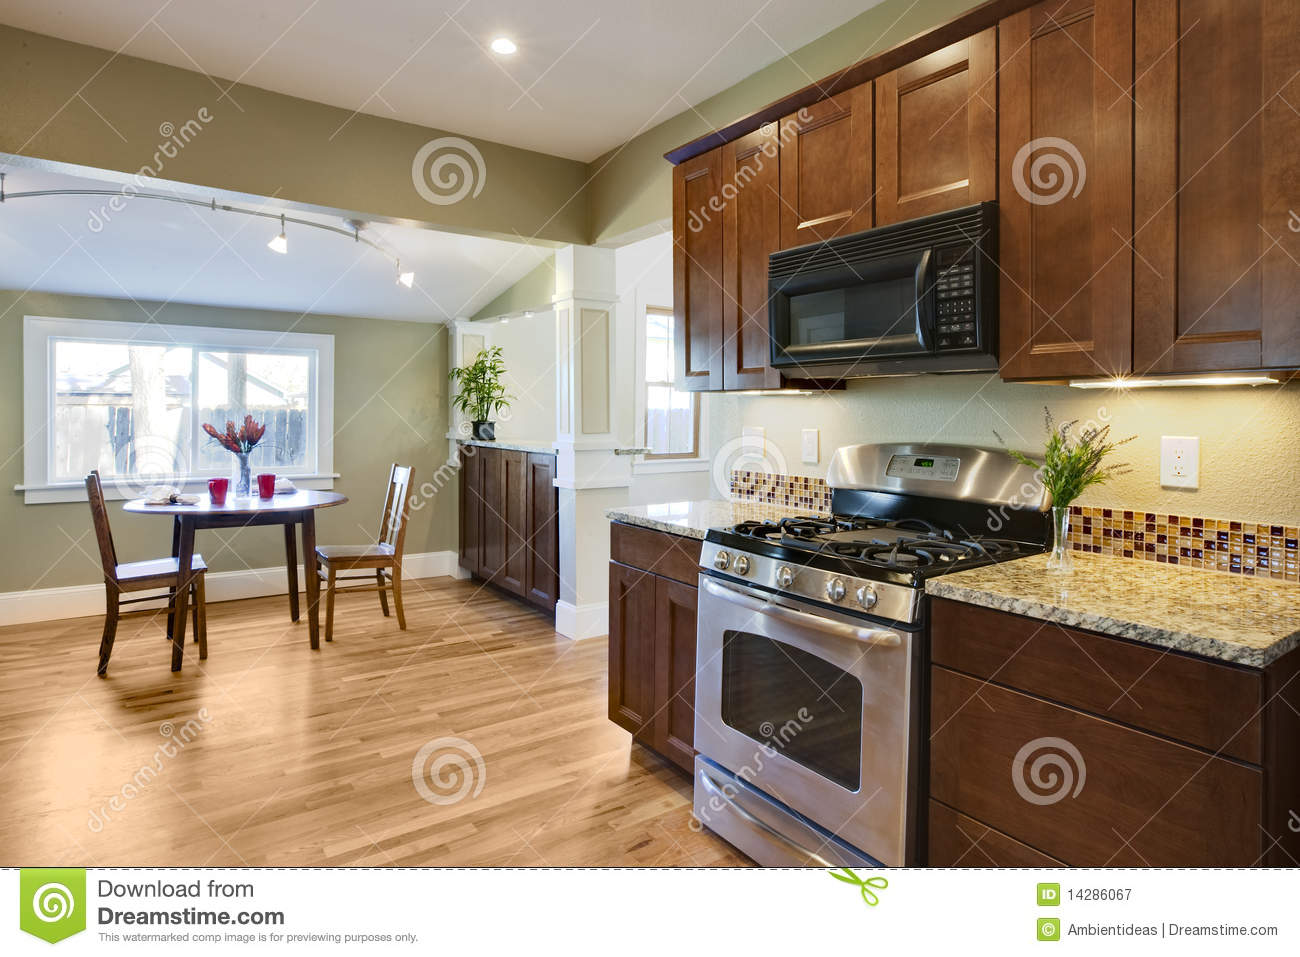 royalty free stock photography remodel kitchen wood flooring image wood floor in kitchen Remodel kitchen with wood flooring